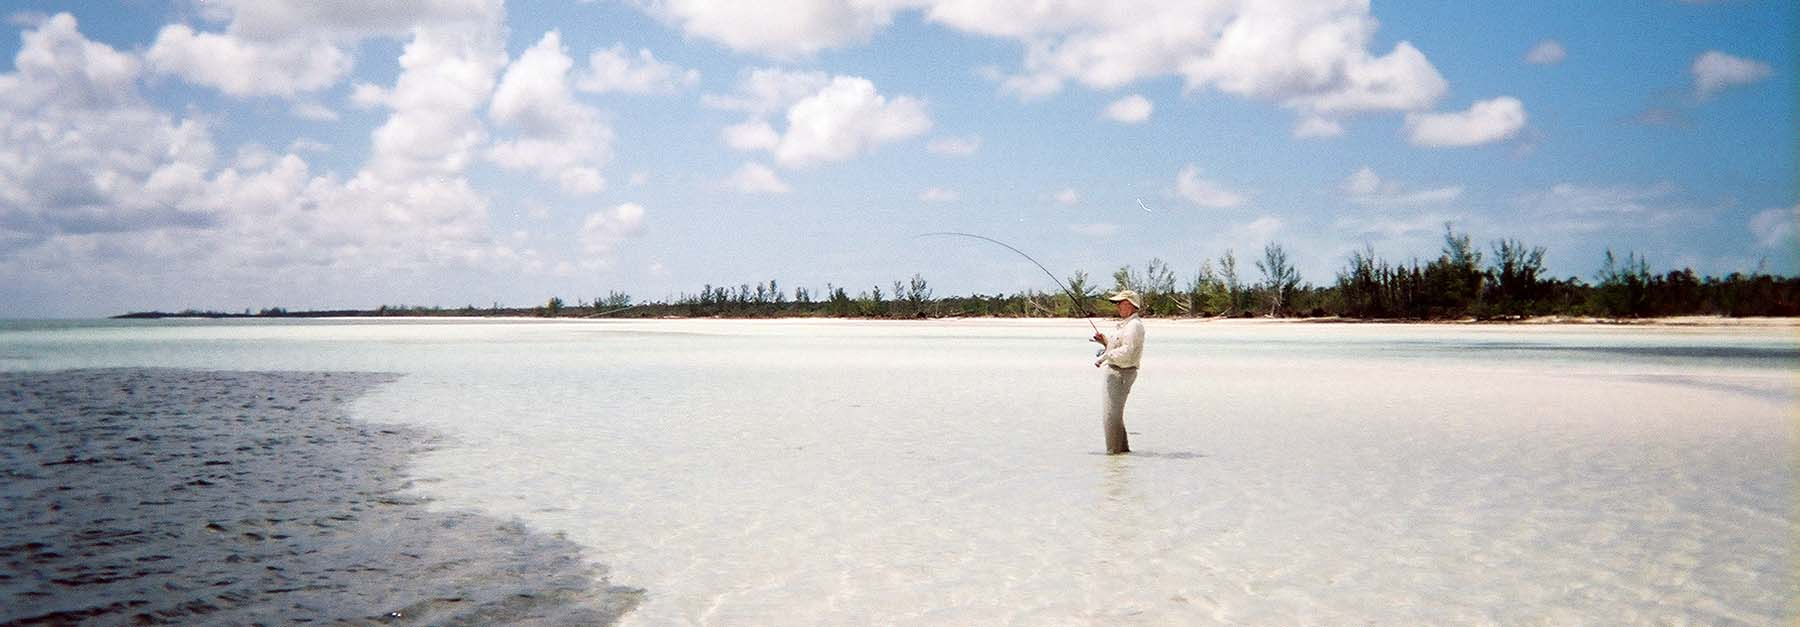 Trophy Bonefish Wading for Bonefish North Riding Point CLub Angler Adventures